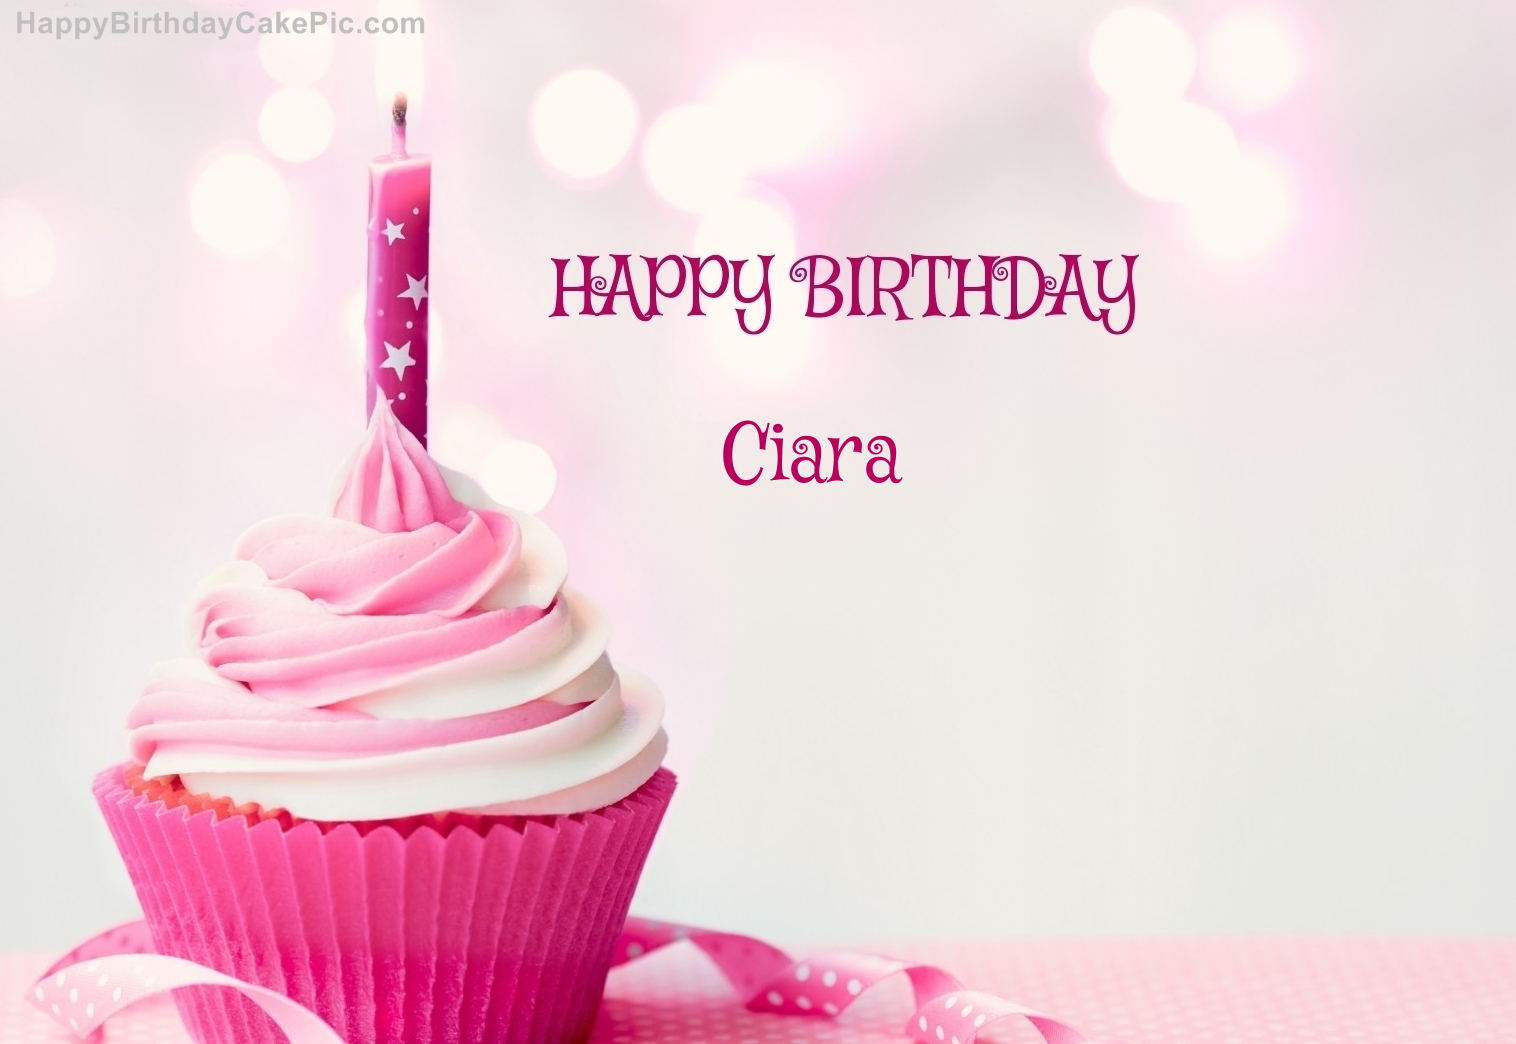 Happy Birthday Cupcake Candle Pink Cake For Ciara